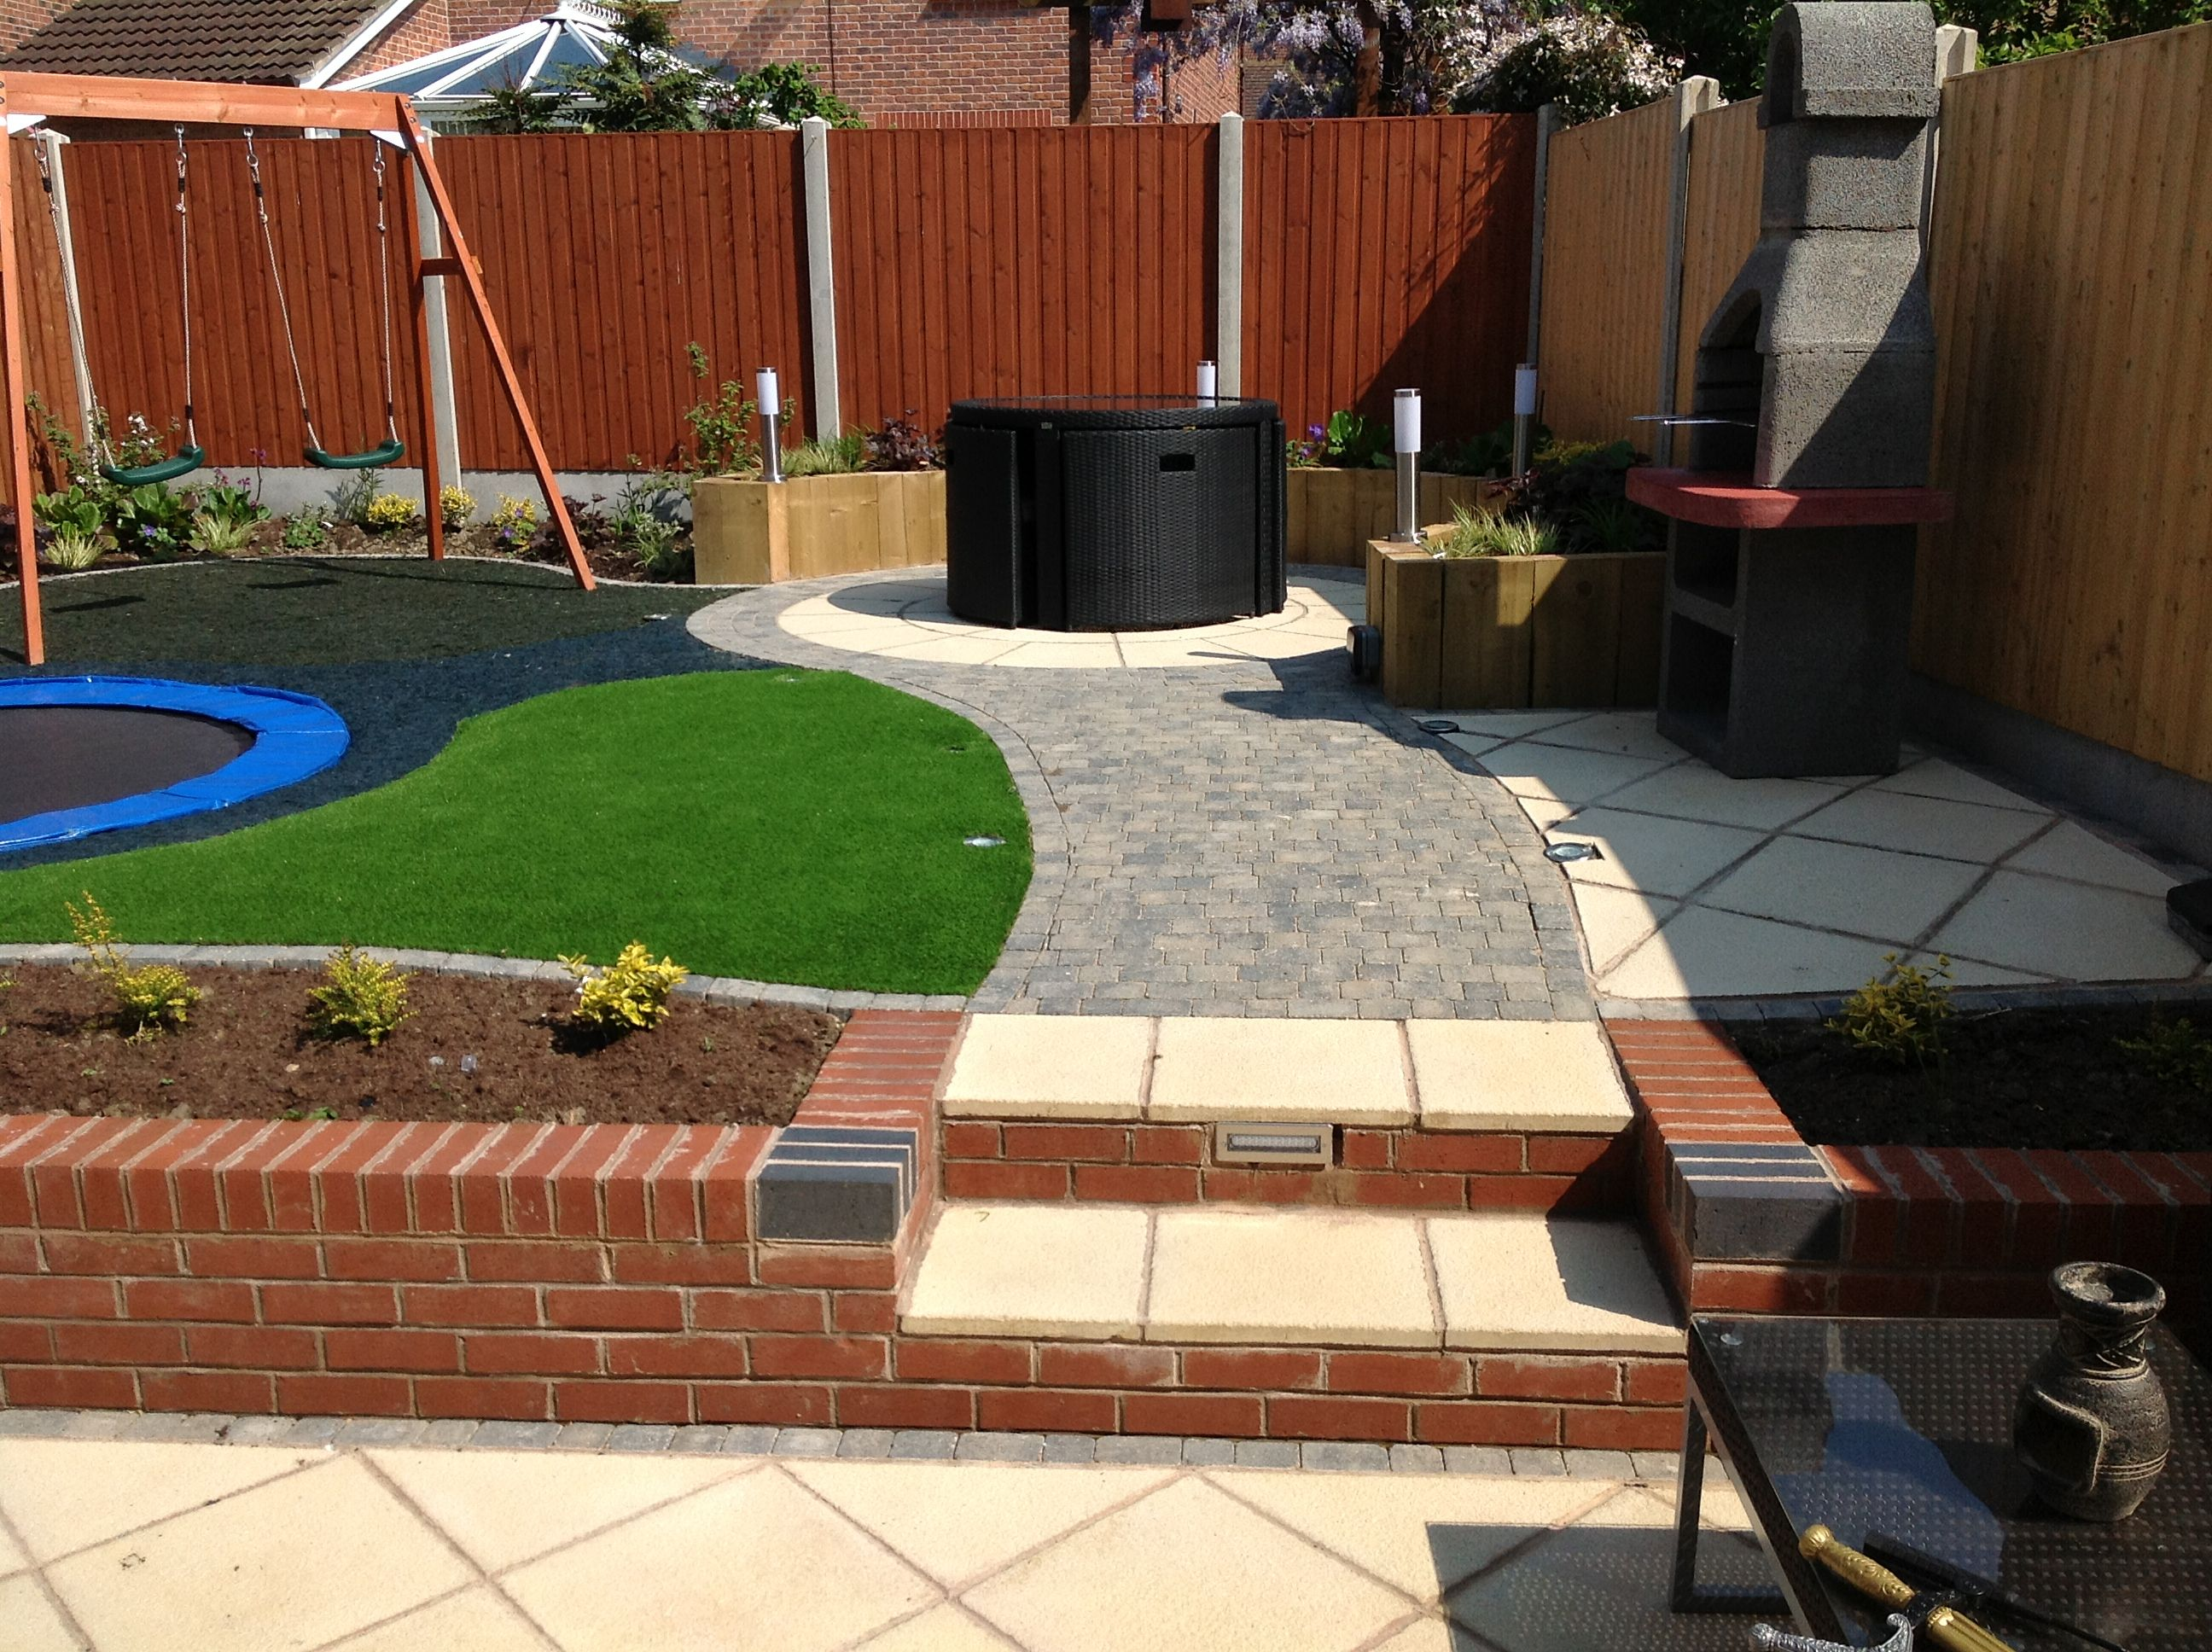 completed garden designs and construction with sunken trampoline - Garden Design With Trampoline